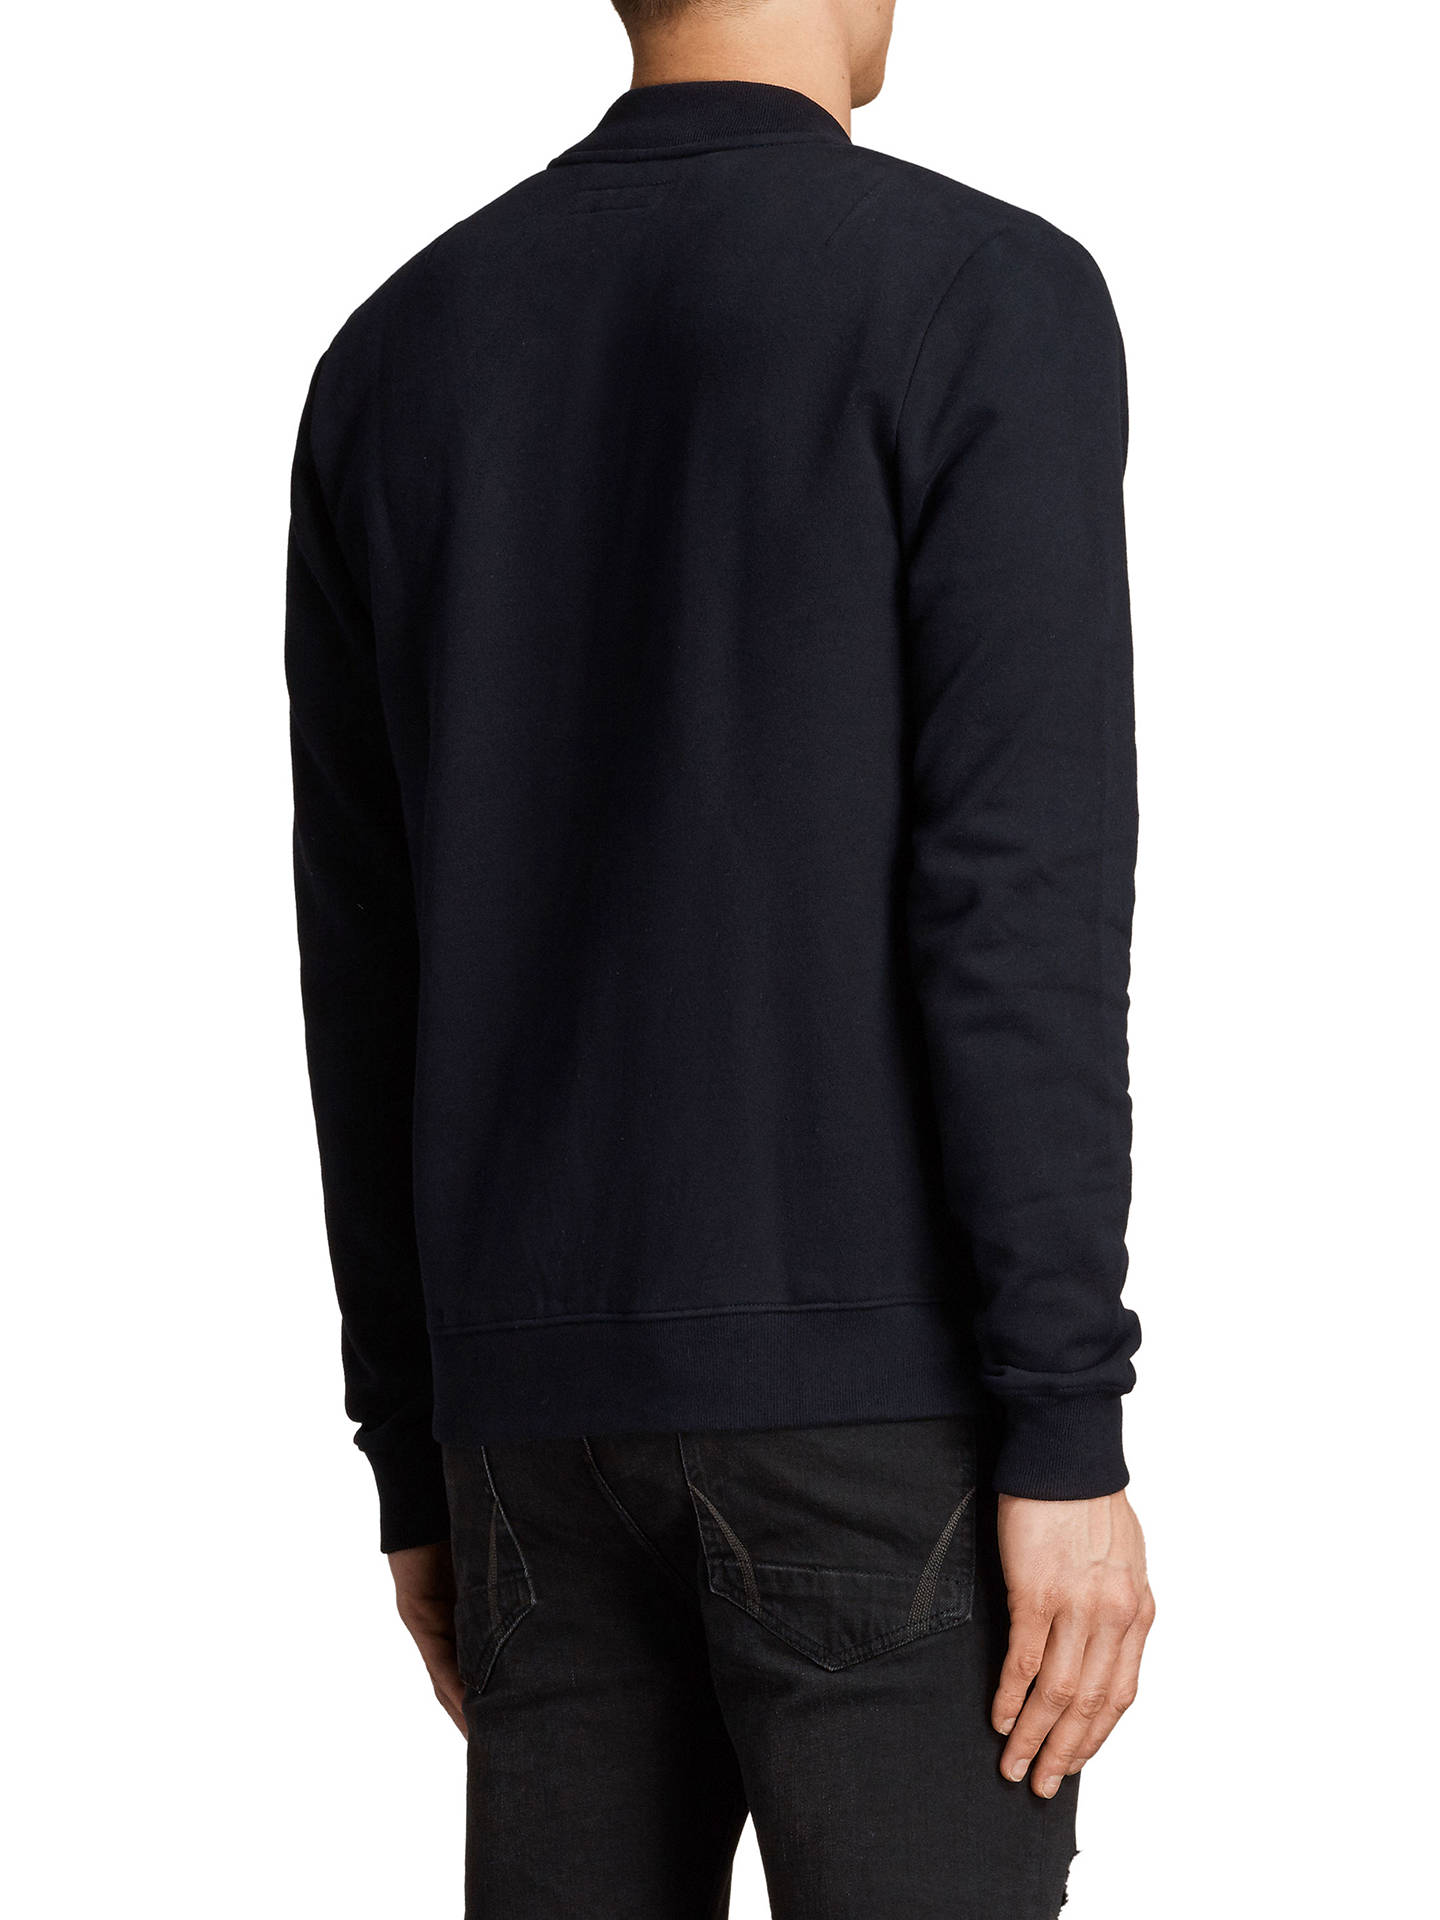 BuyAllSaints Raven Bomber Jersey Cardigan, Ink Navy, XS Online at johnlewis.com